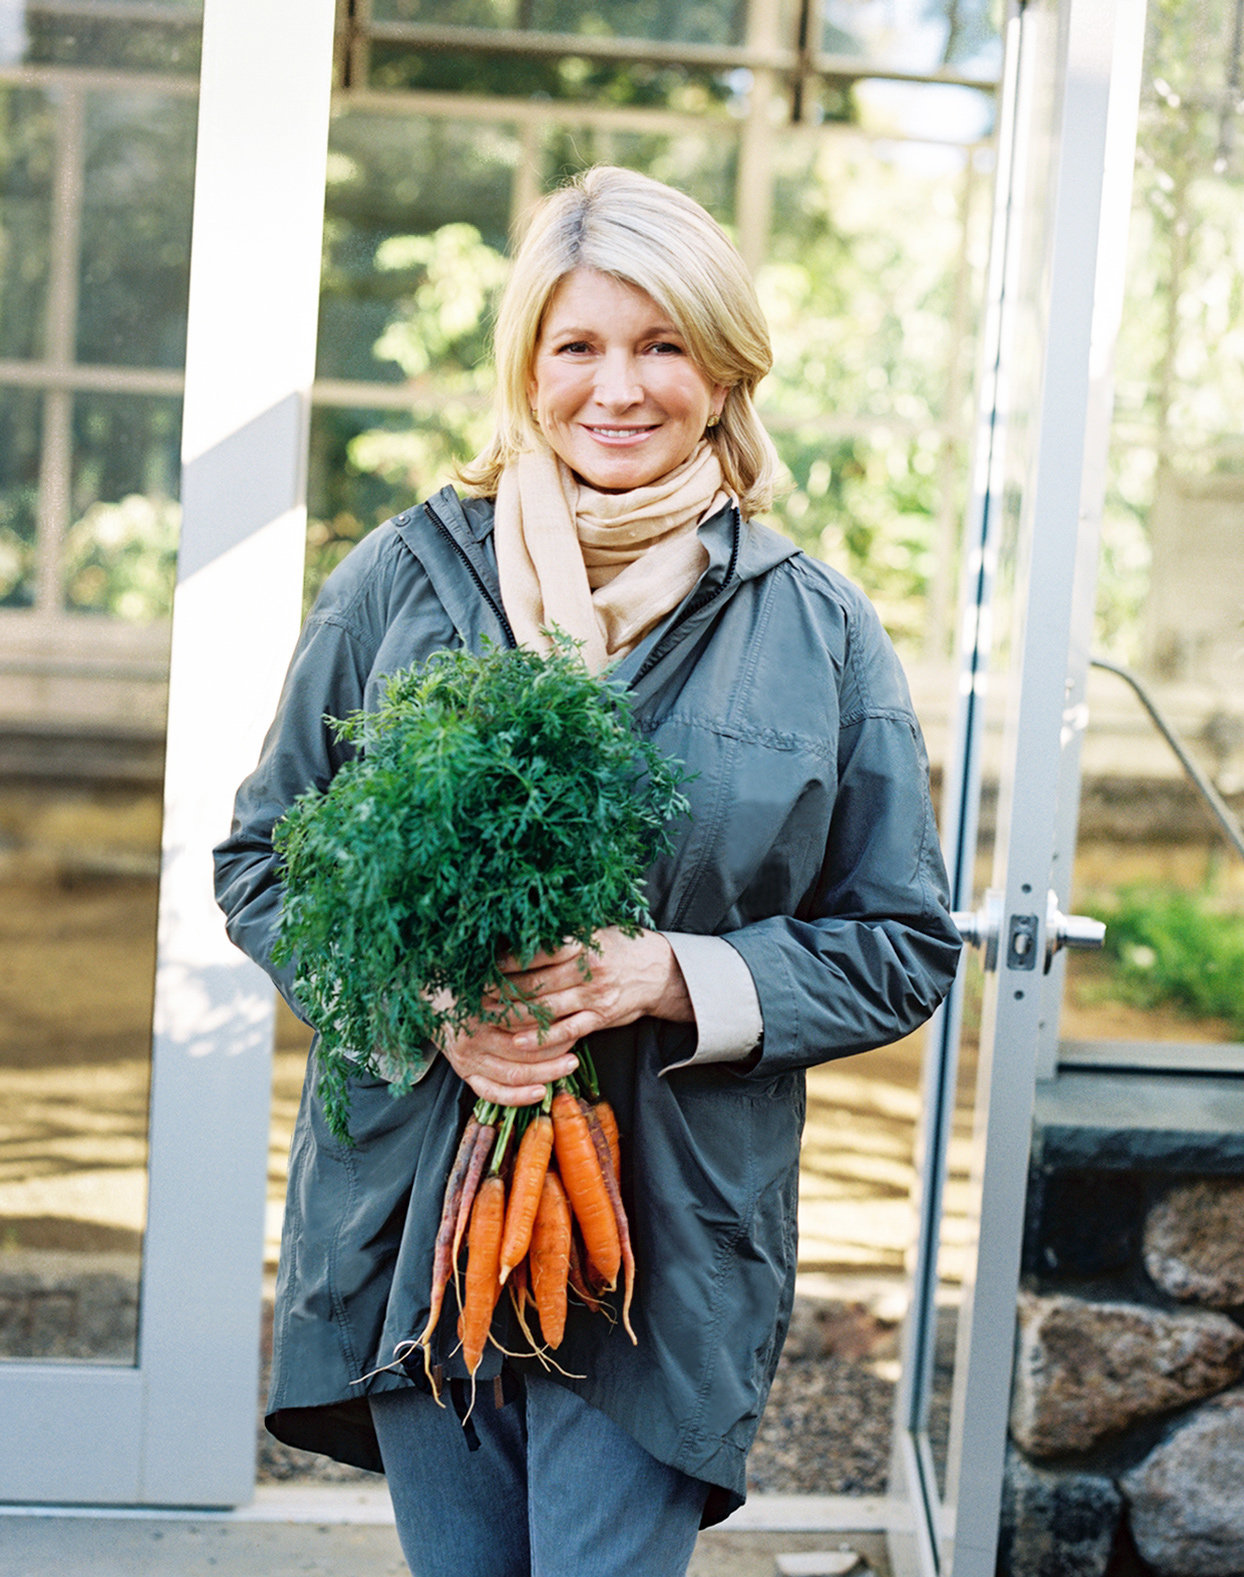 Martha Stewart outside wearing blue jacket holding carrots